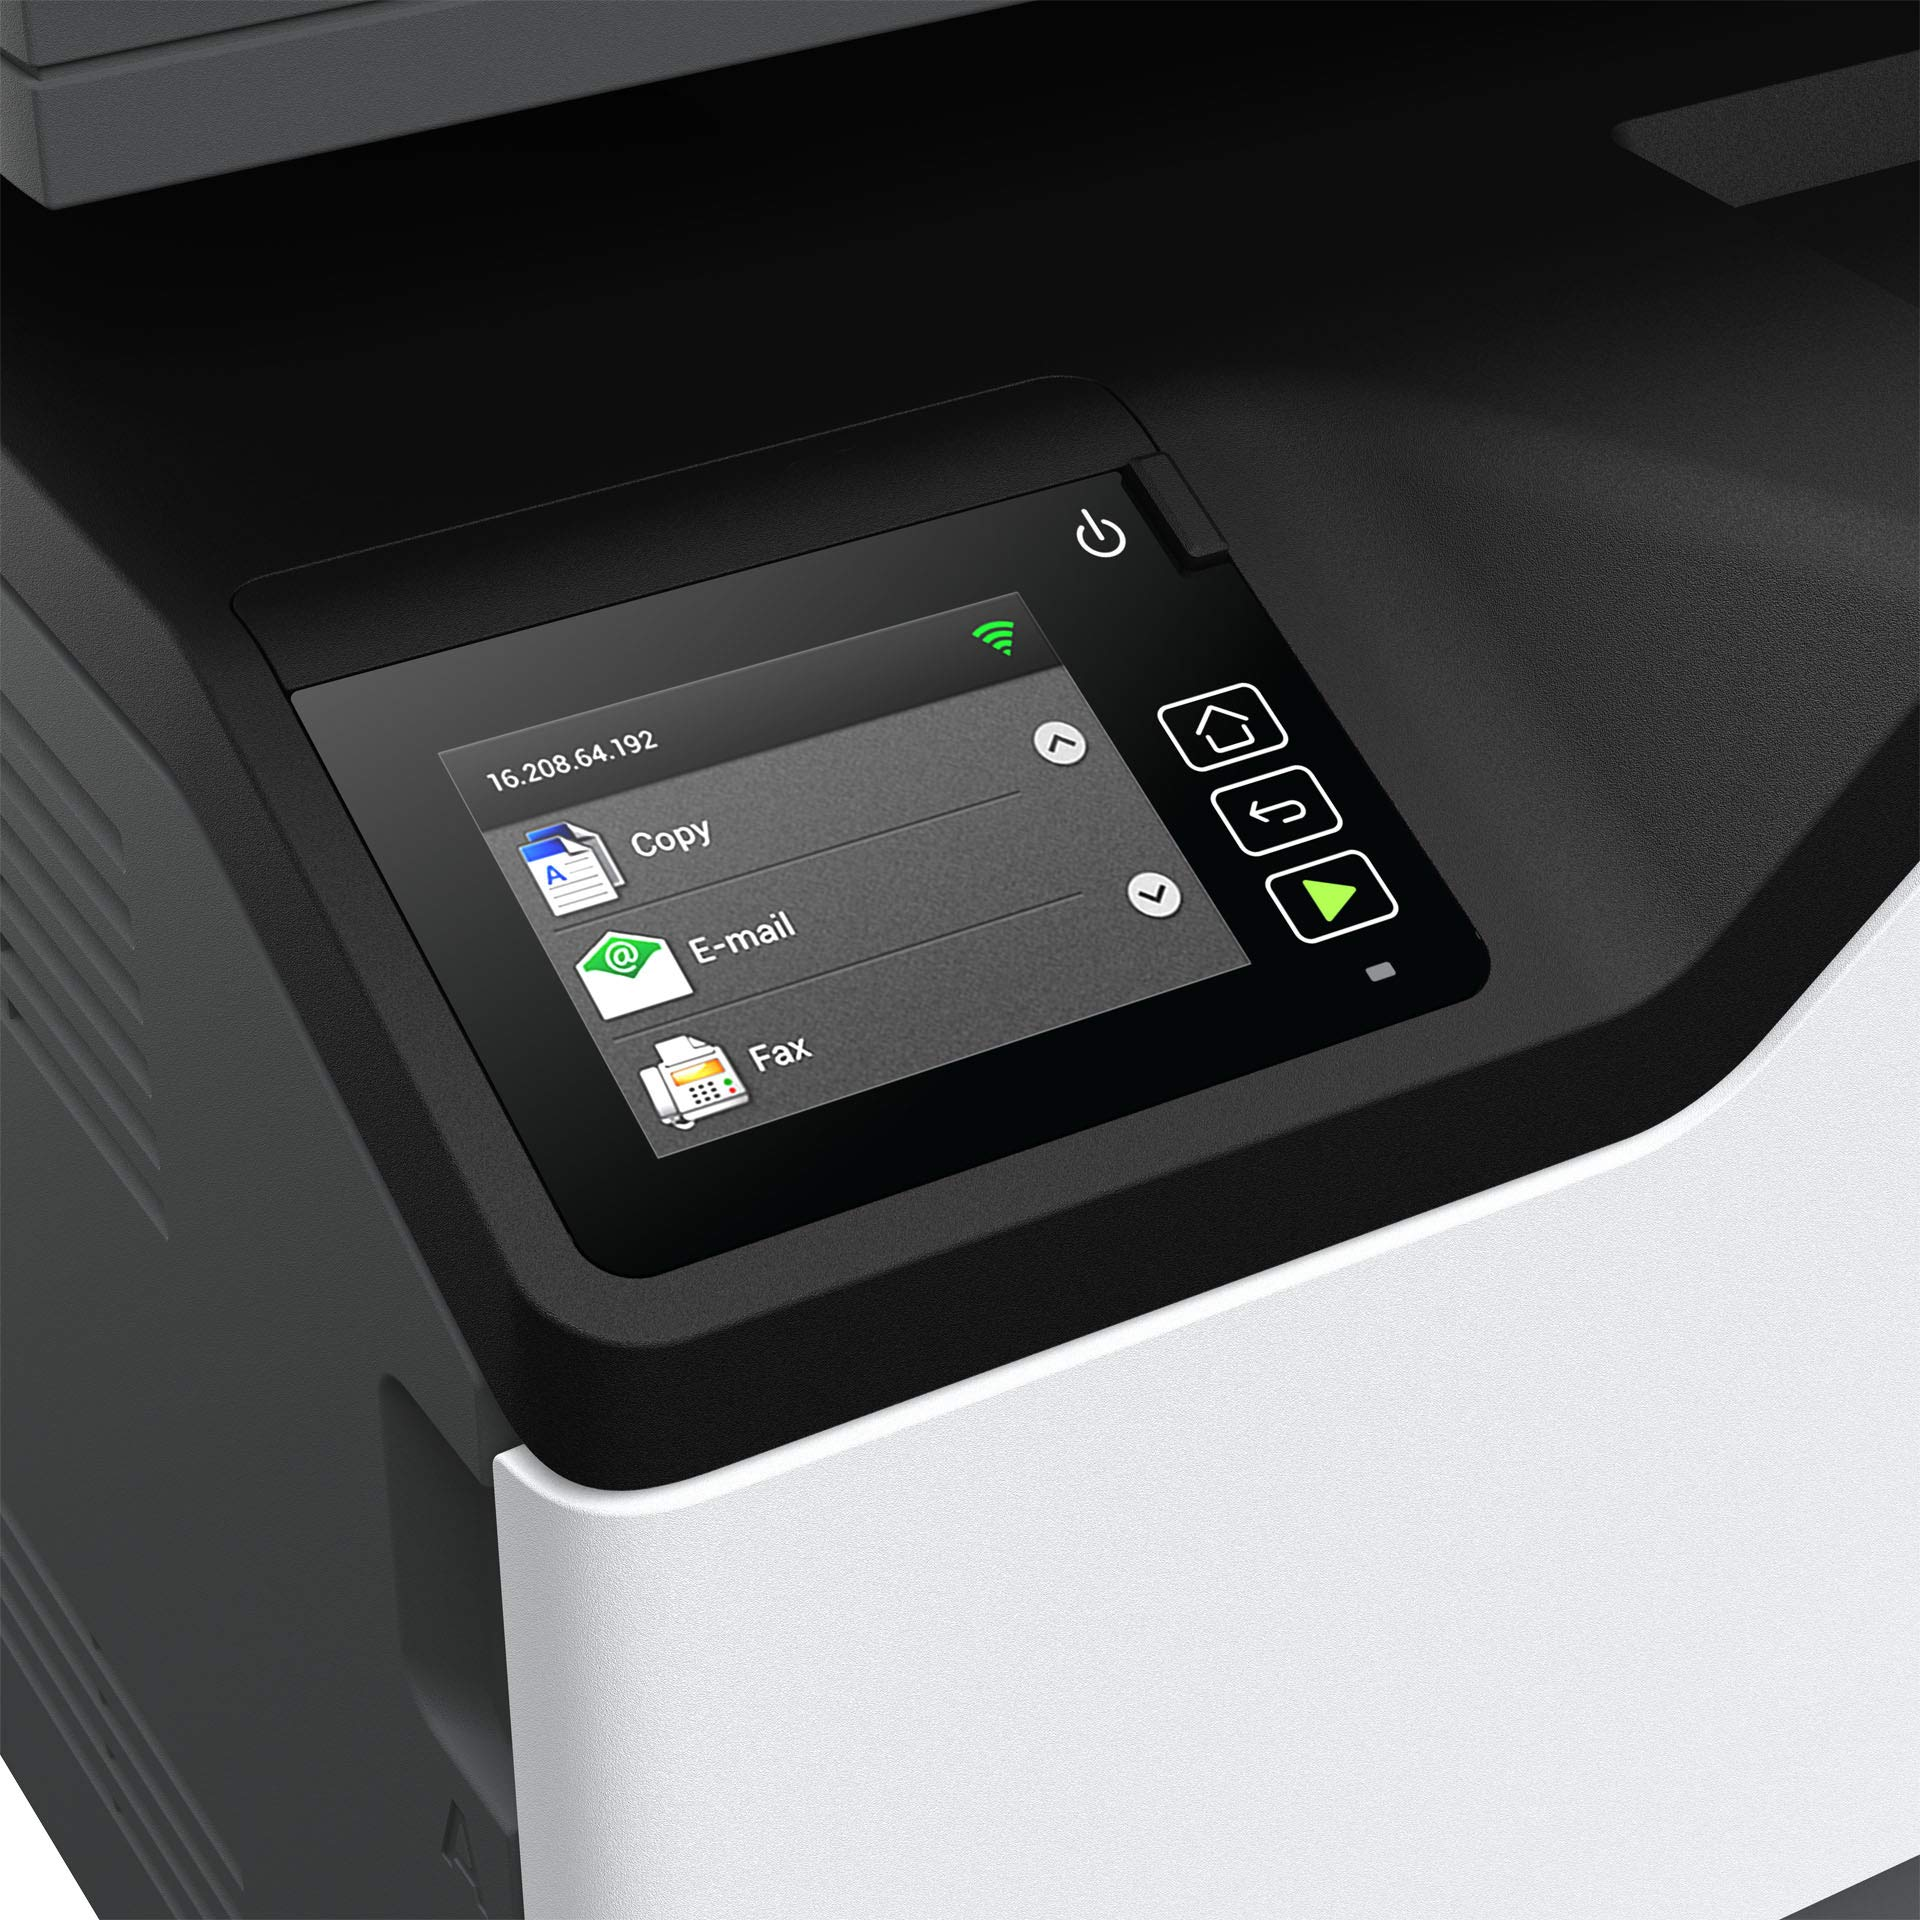 Lexmark MC3224dwe Color Multifunction Laser Printer with Print, Copy, Scan, and Wireless Capabilities, Two-Sided Printing with Full-Spectrum Security and Prints Up to 24 ppm (40N9040) by Lexmark (Image #4)